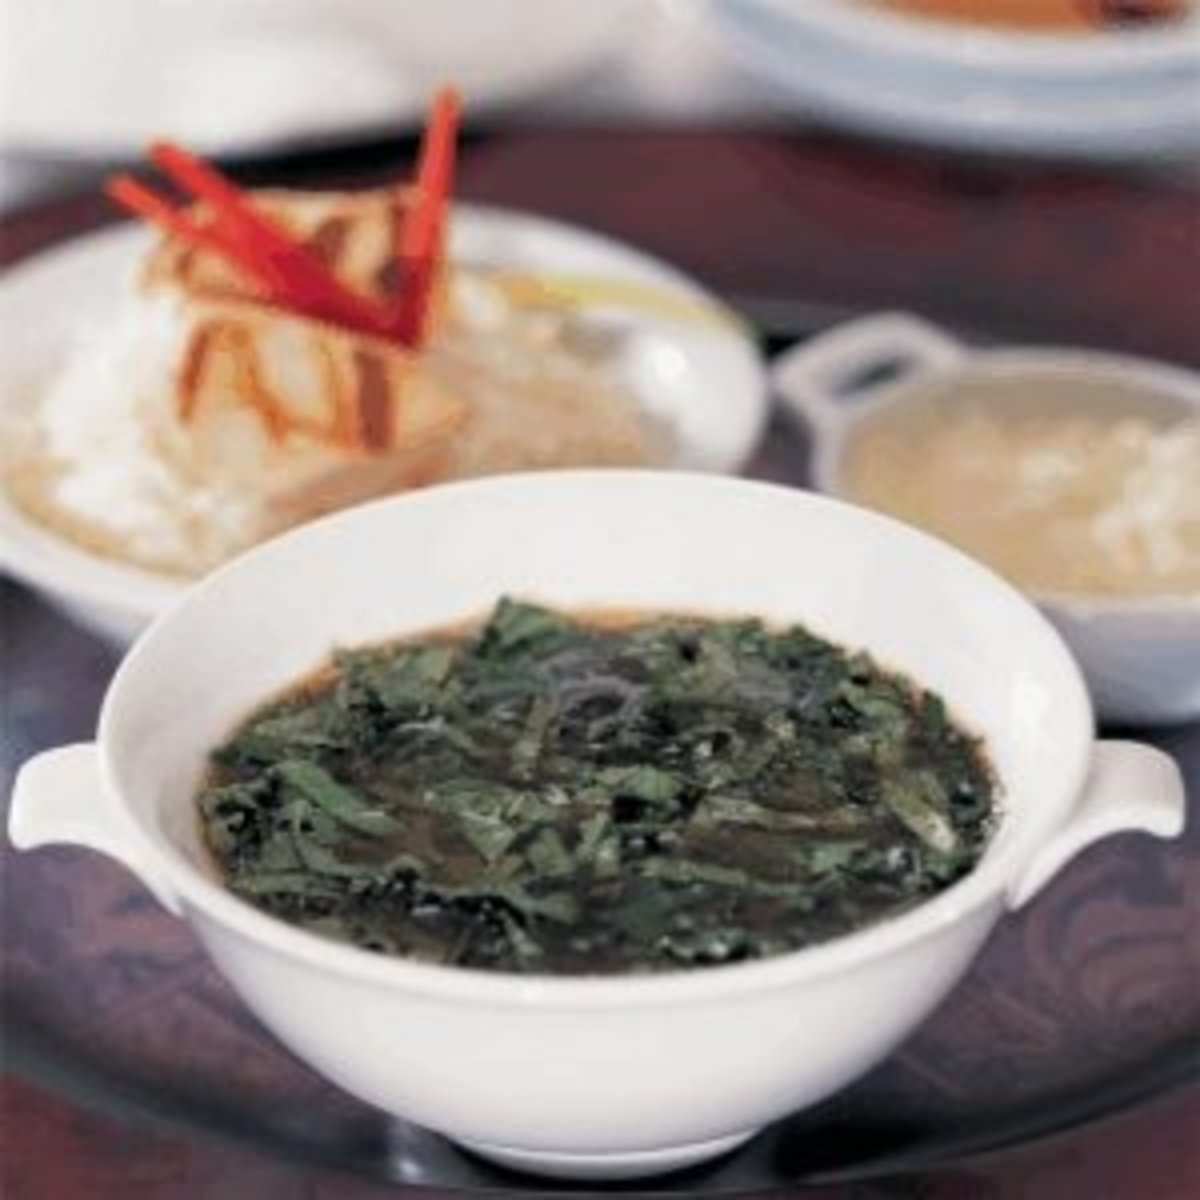 Egyptian Maloukhiya soup